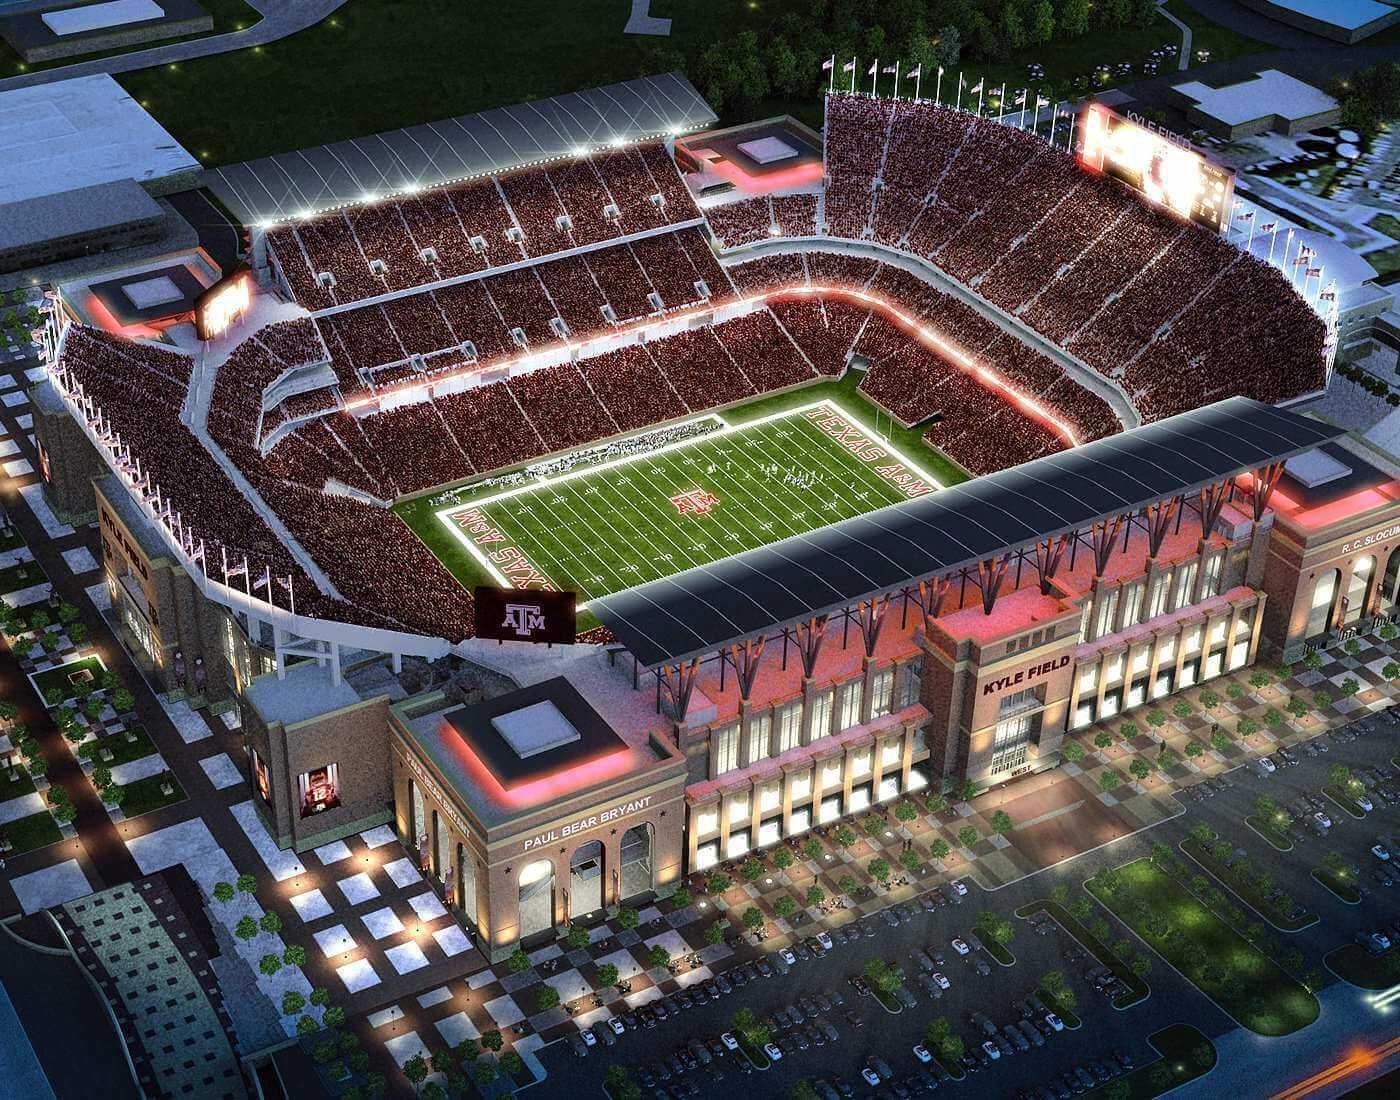 Kyle Field Texas City United States Of America Sports Venue In 2020 Kyle Field A M College Station Texas A M Football